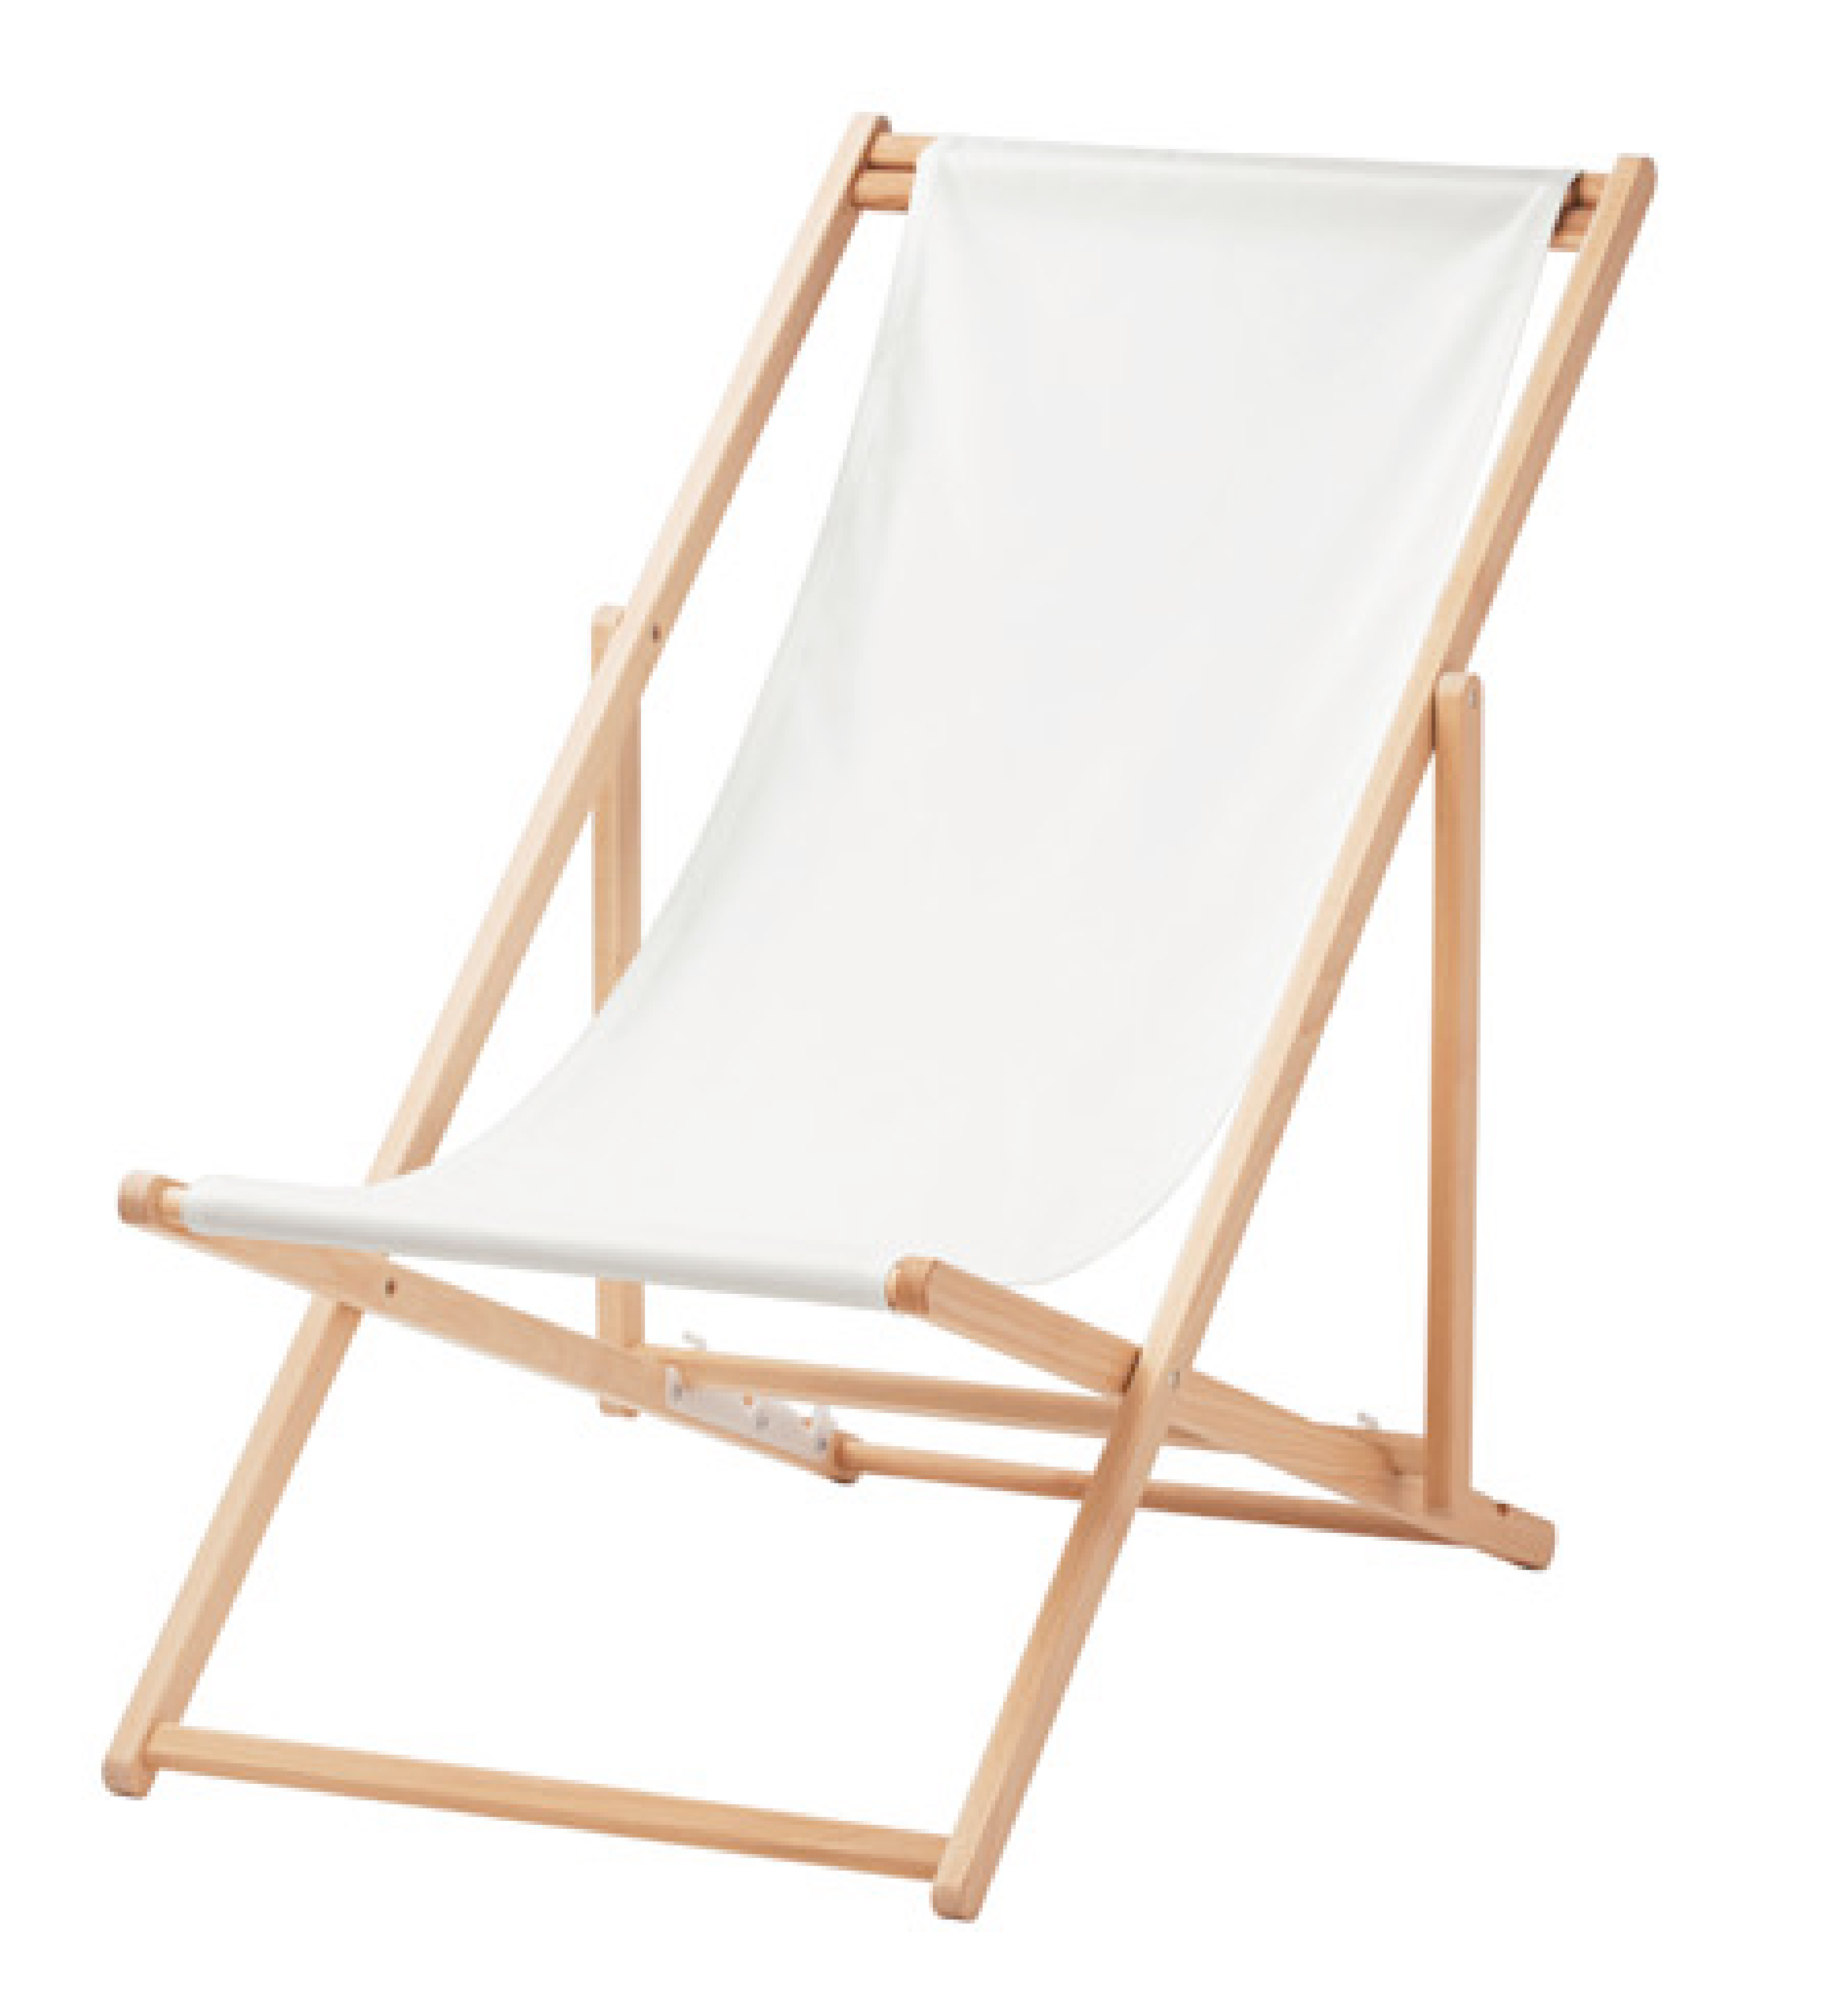 Uncategorized hanging chair ikea - These Classic Beach Chairs Were Perfect For Movie Seating We Dressed Them Up With Bold Pillows And Blankets From Great Stitch We Sat End Tables Inbetween